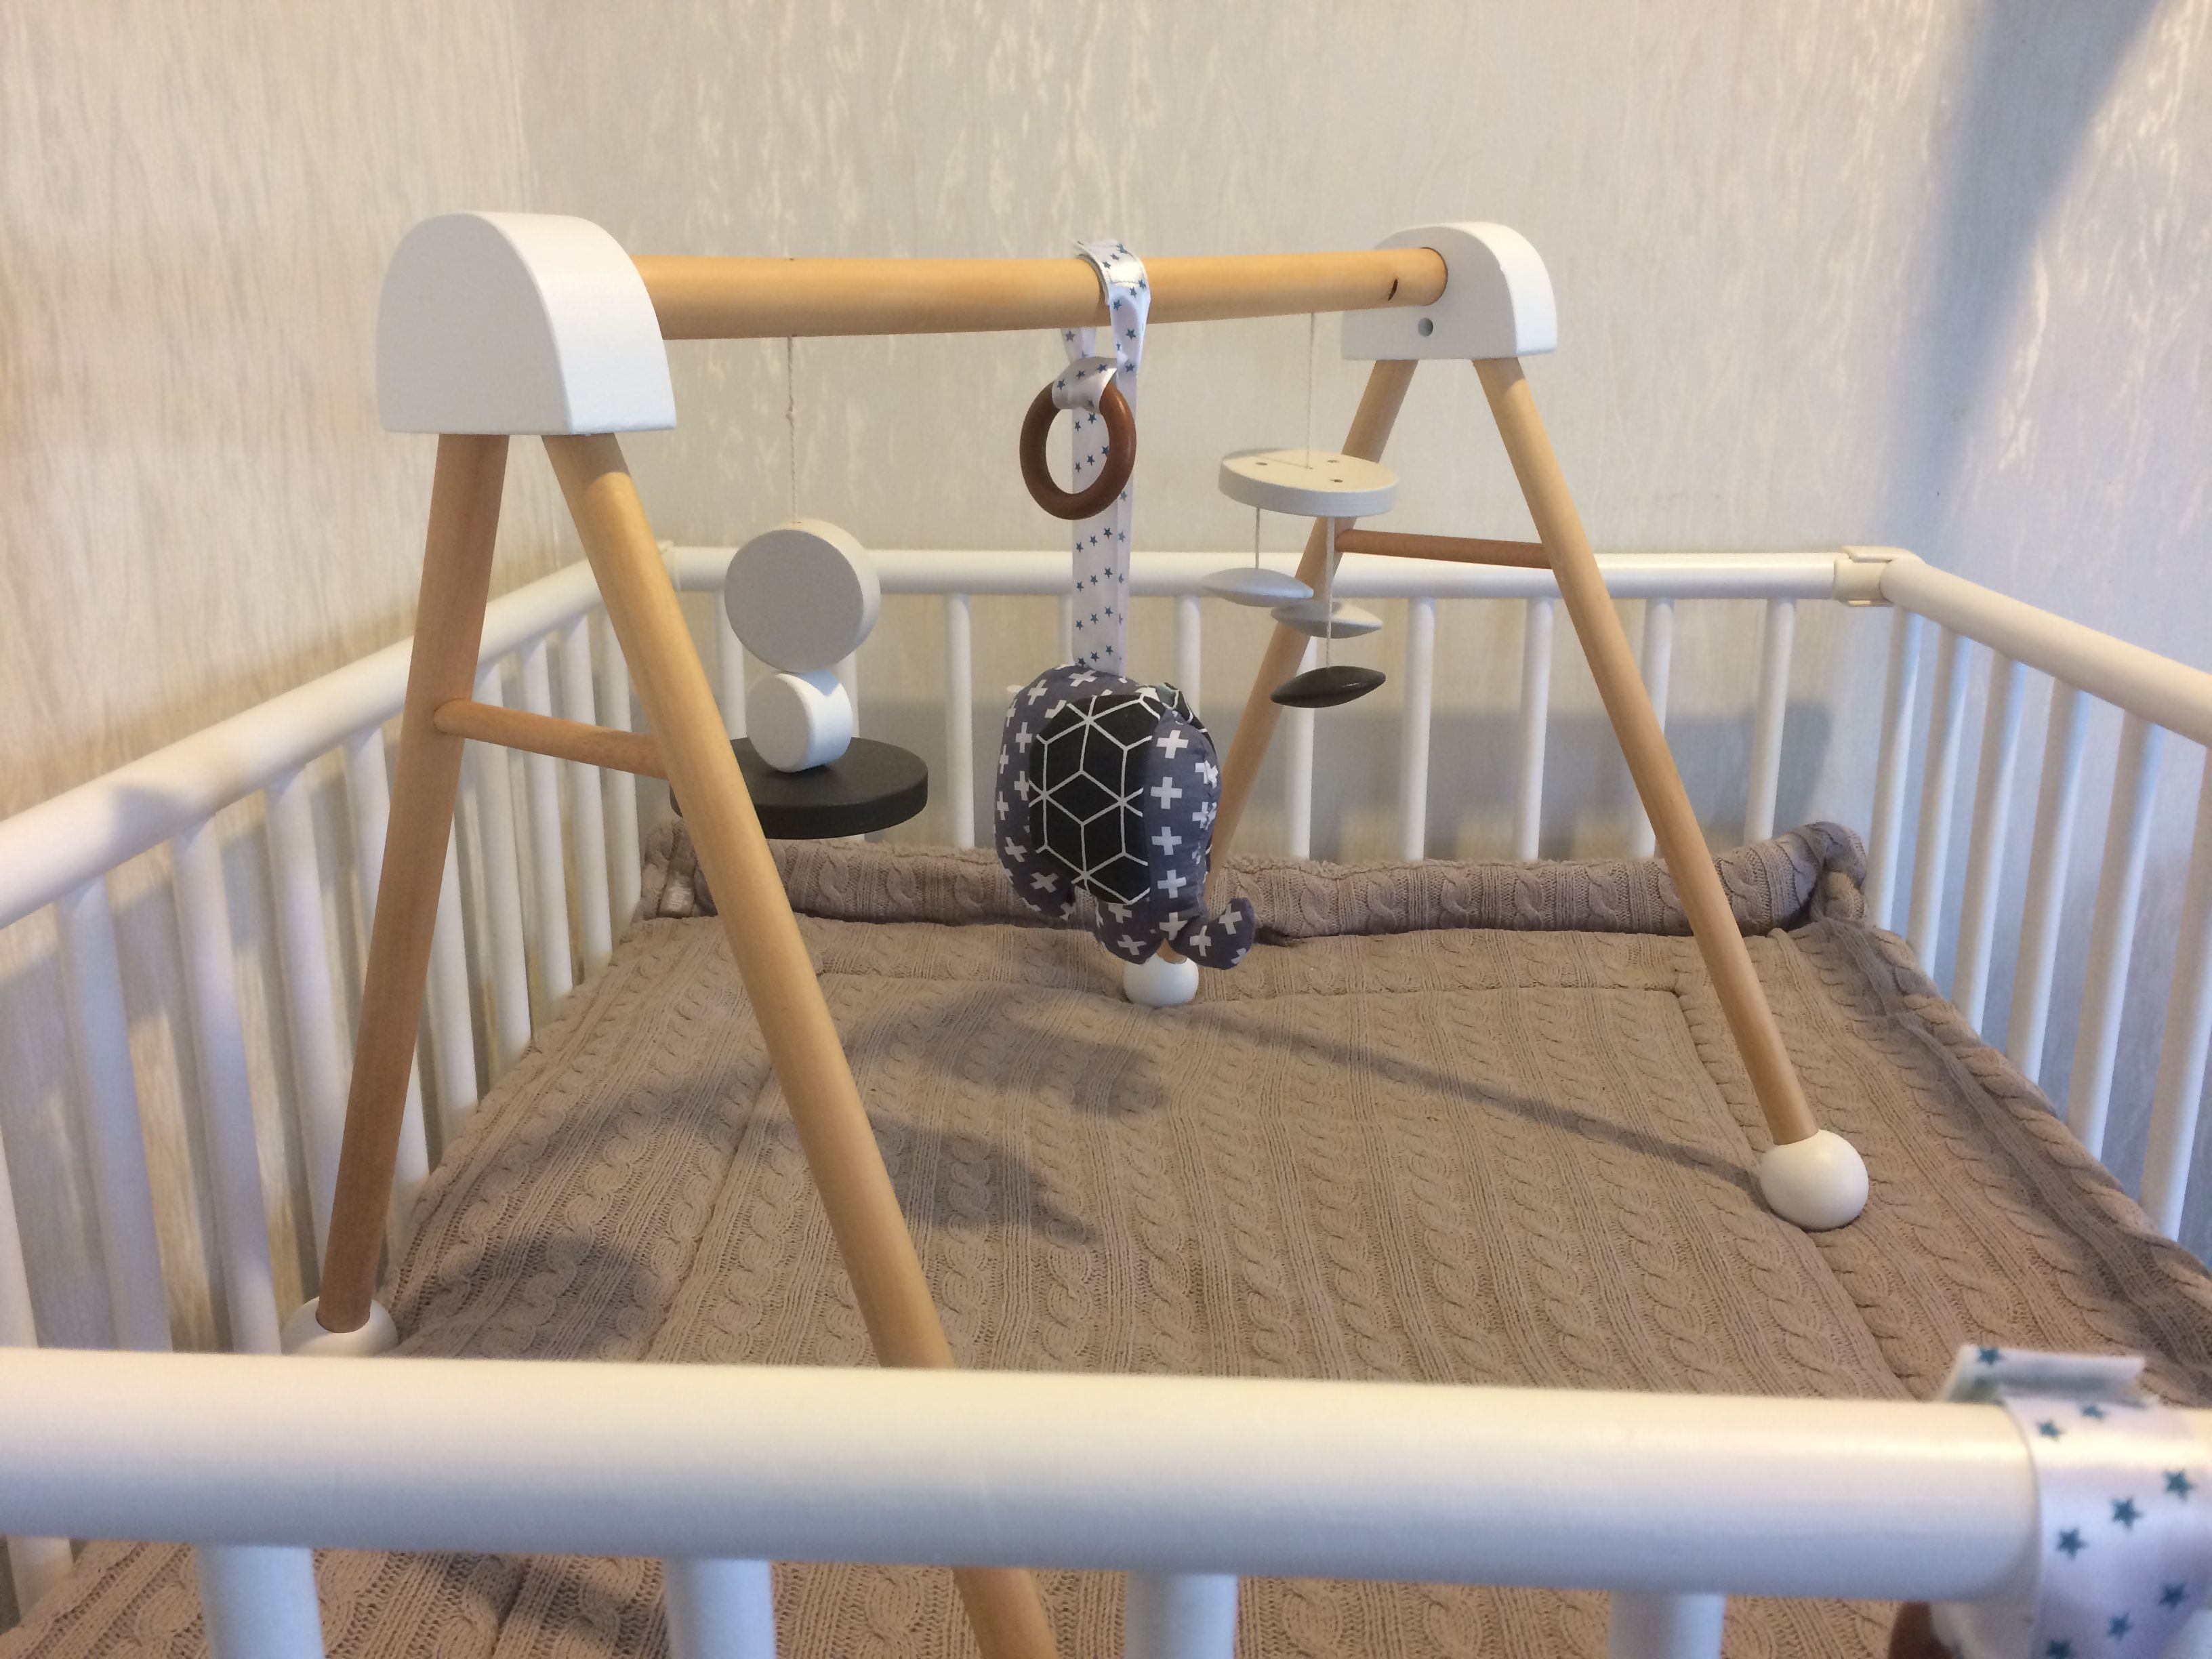 Kmart wooden play gym hack $17 play gym some paint and you re